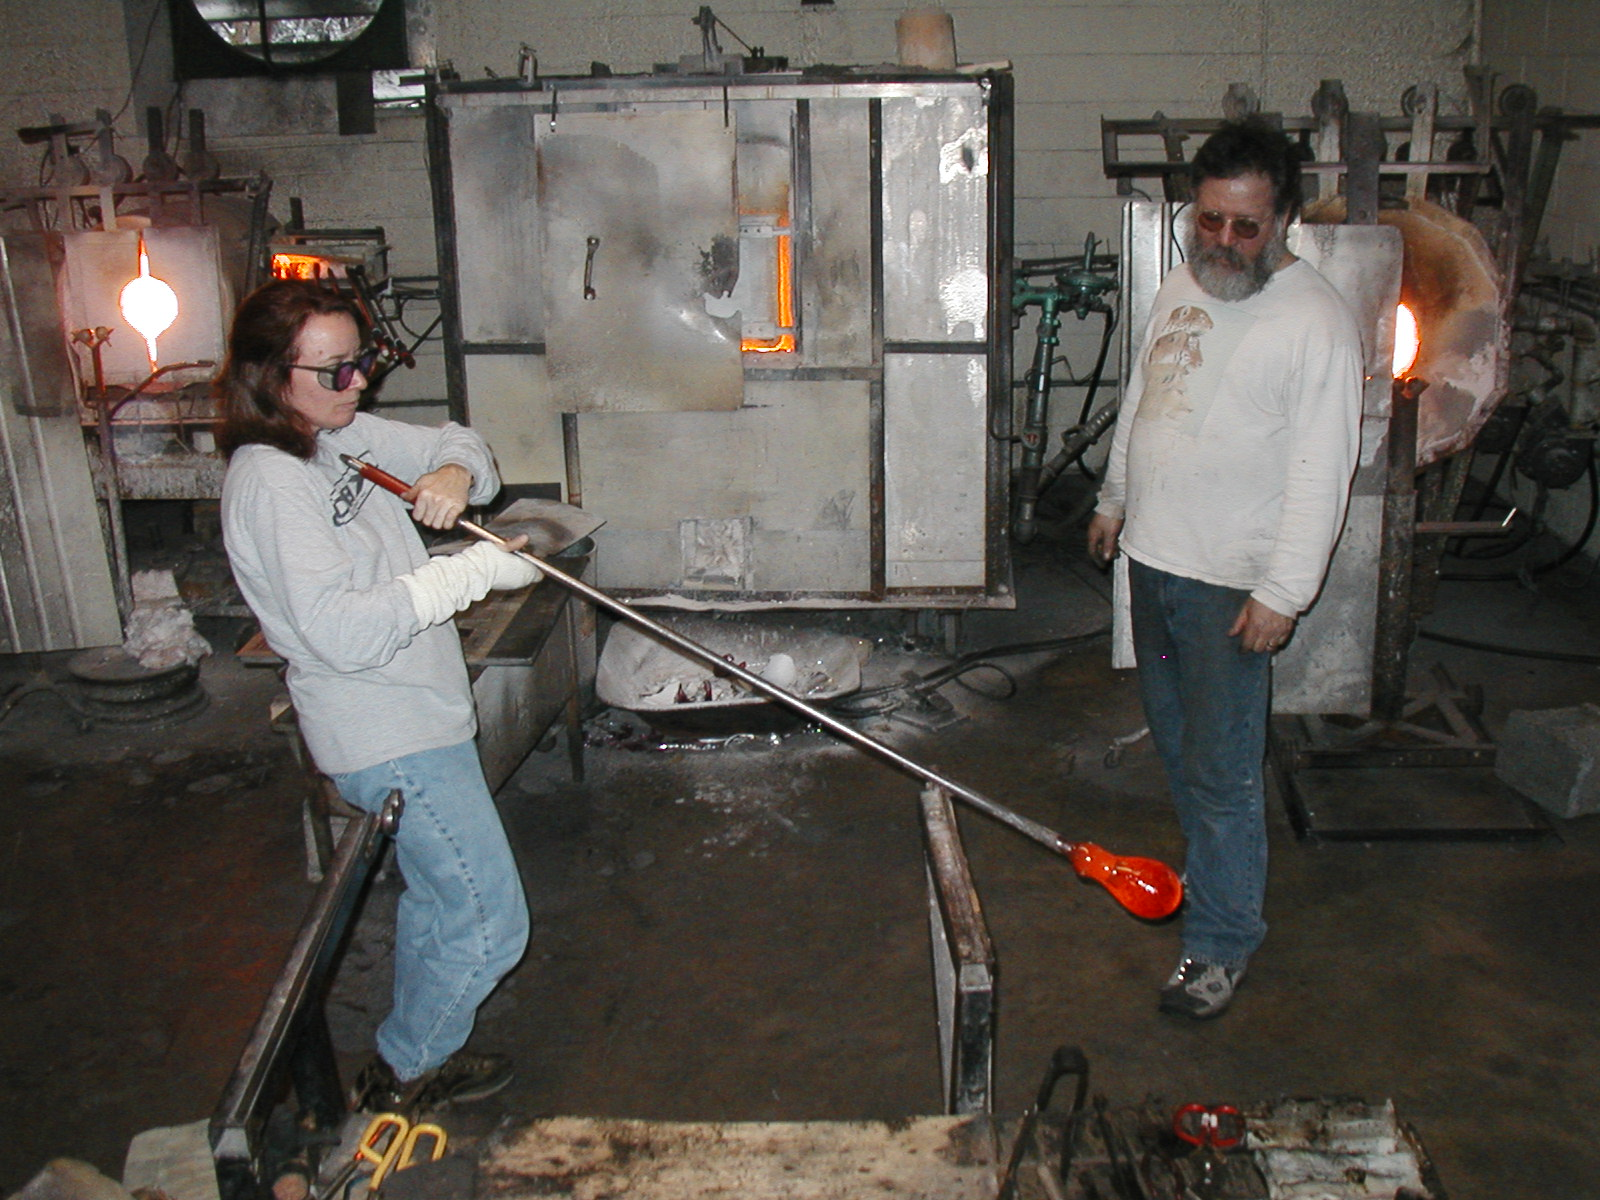 Glassblower.Info - Joel Bless Glasslight Glassblowing class January 18 2004 #154